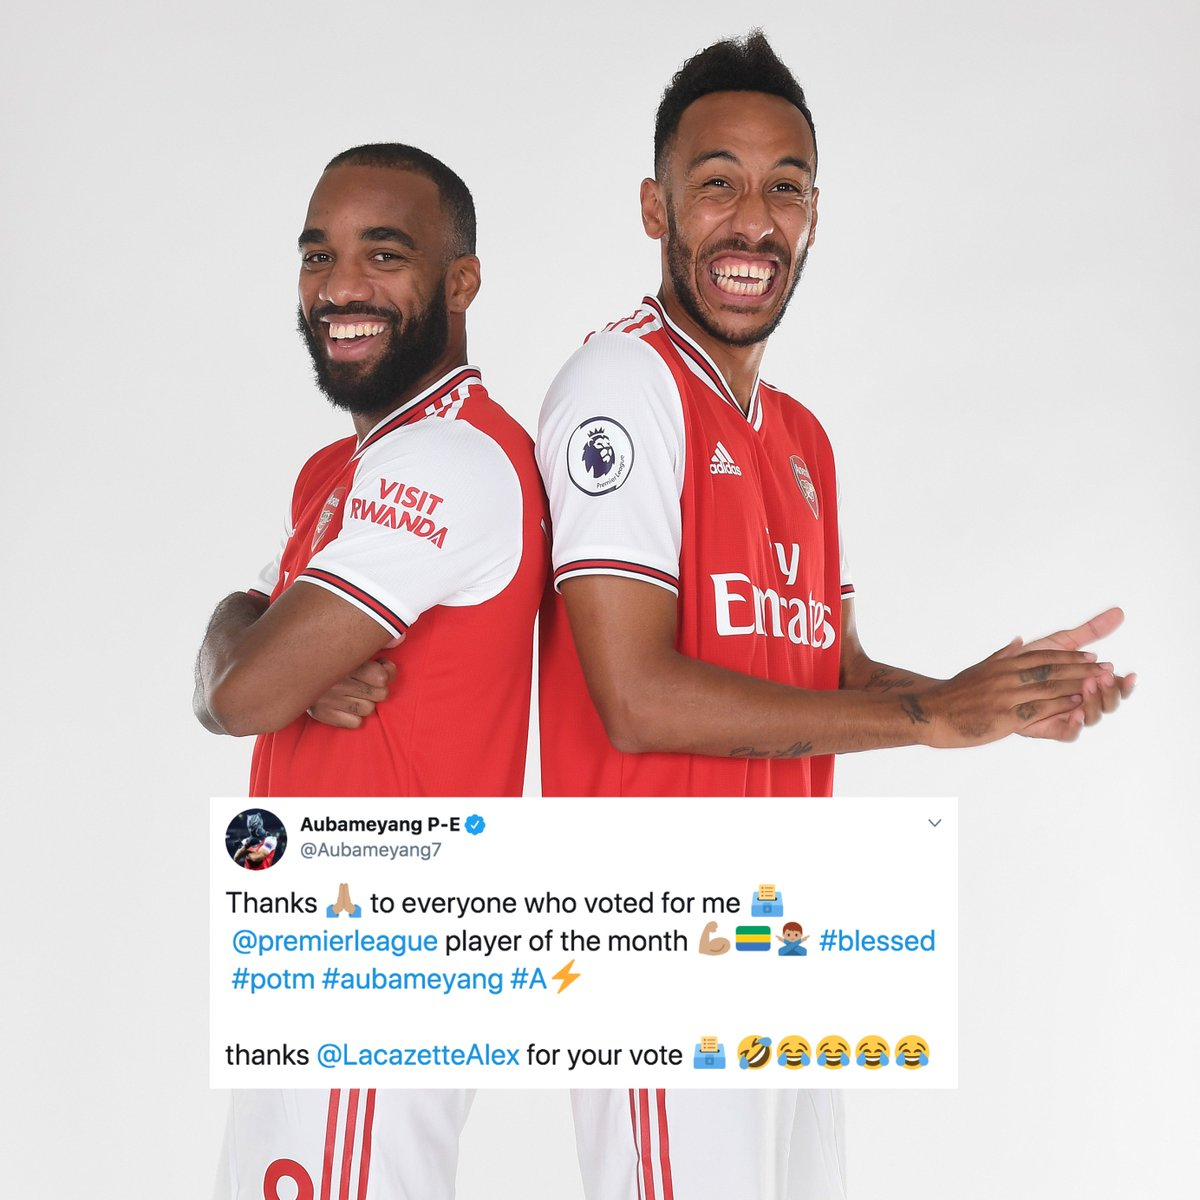 These two 😂❤️ @Aubameyang7 🤝 @LacazetteAlex